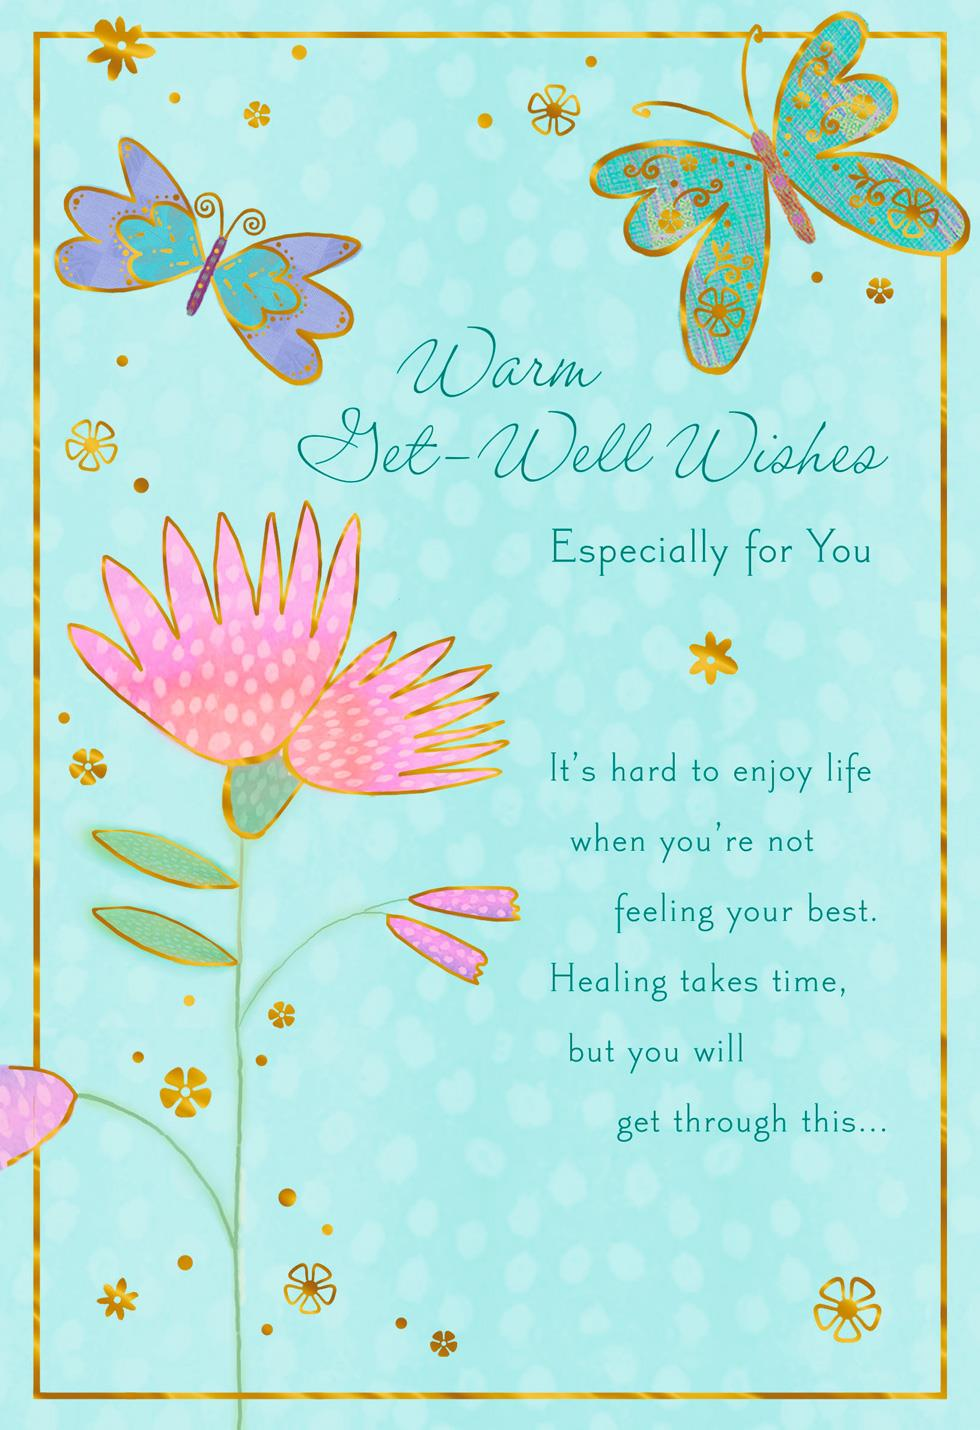 Butterflies And Flower Healing Takes Time Get Well Card Greeting Cards Hallmark